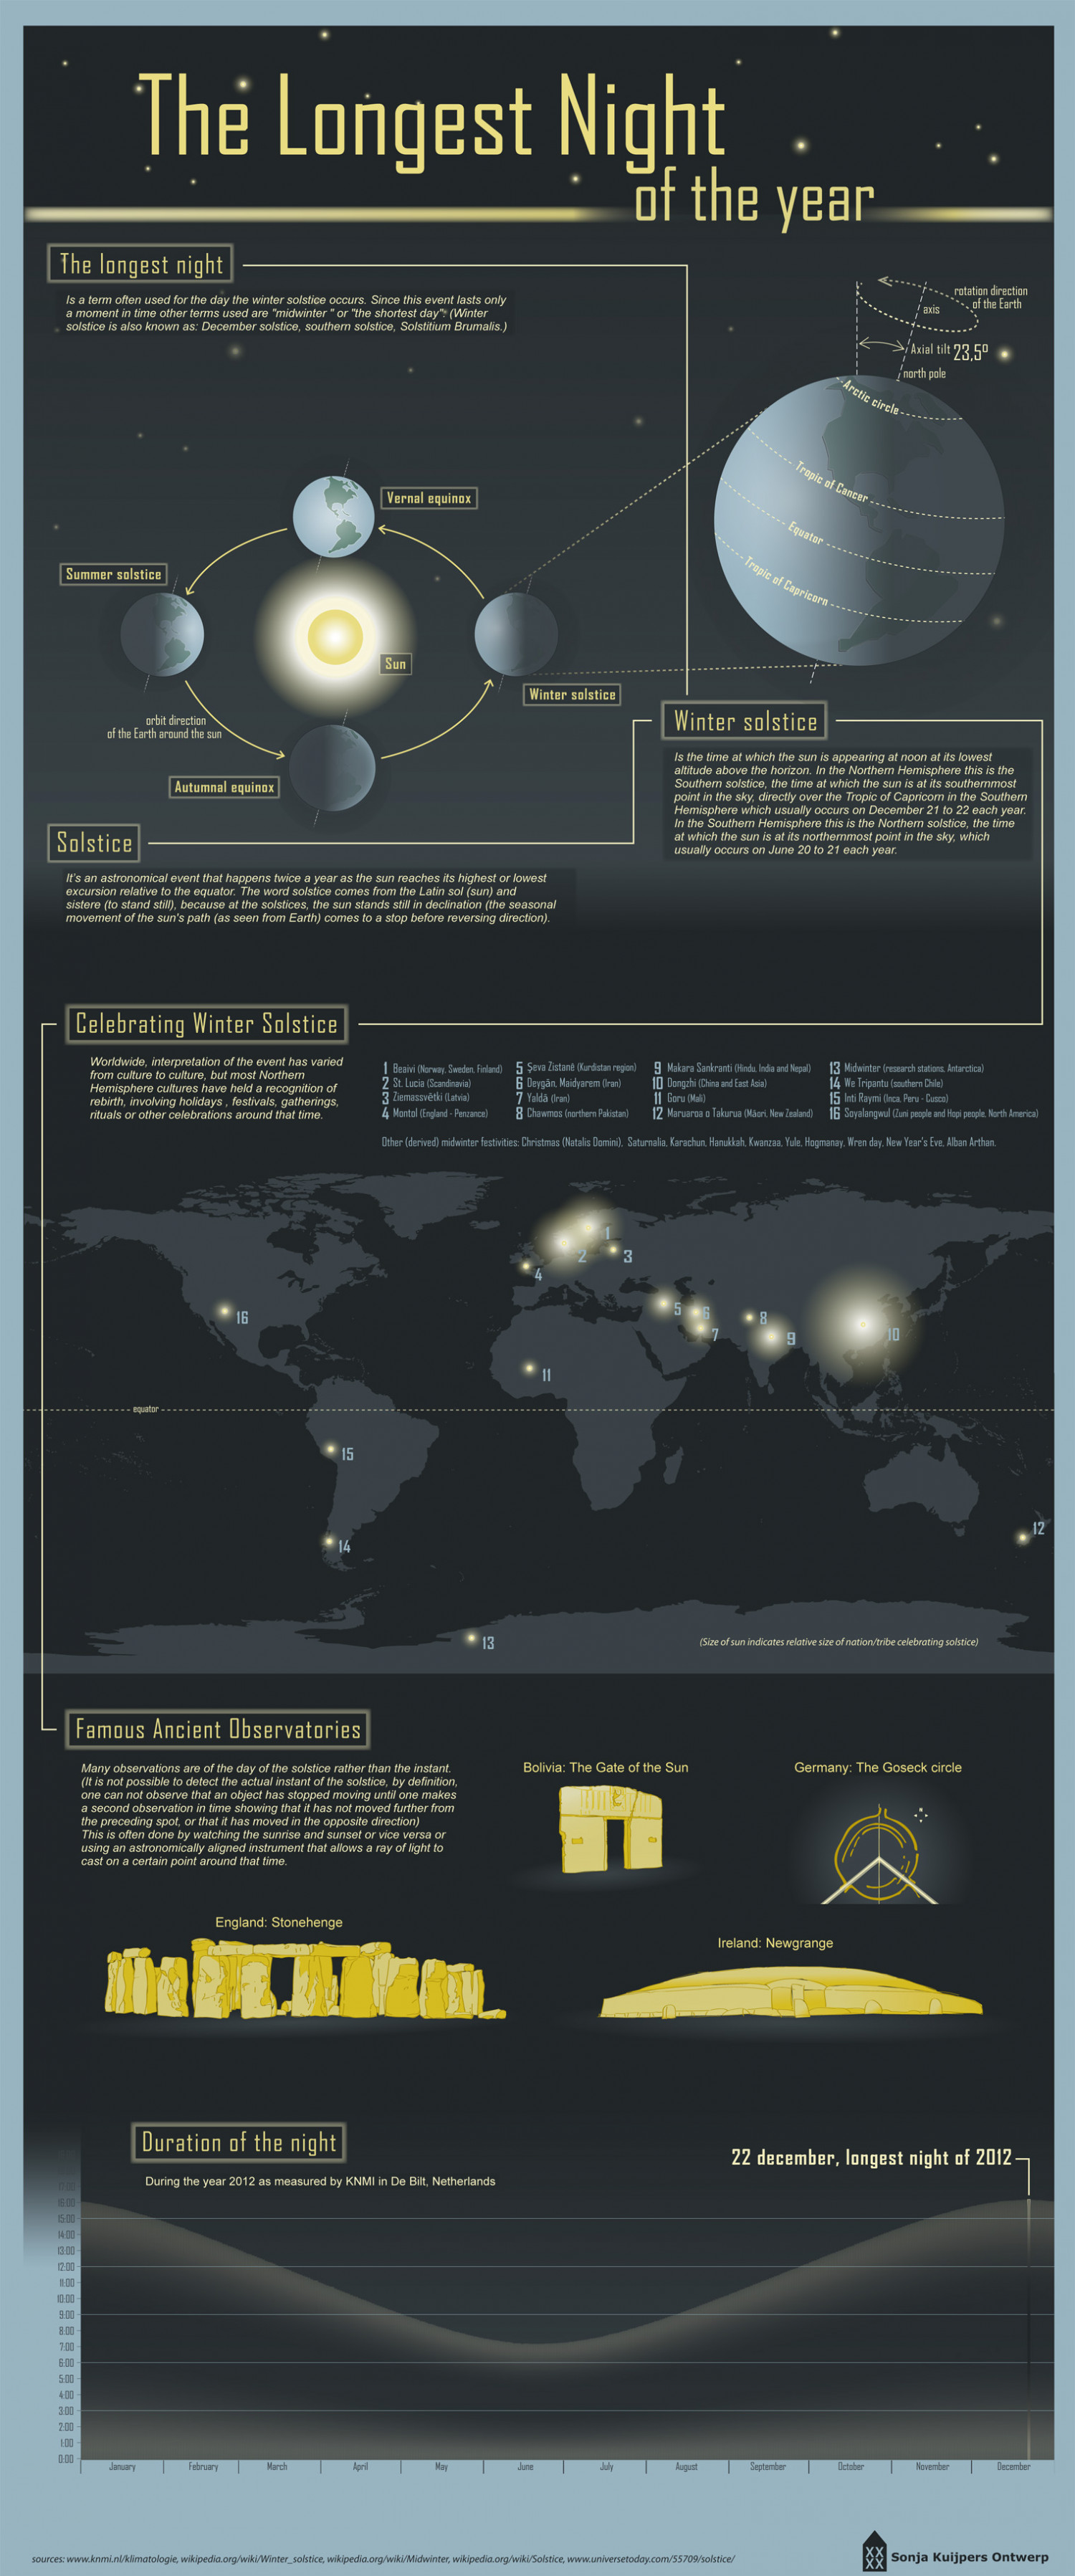 The longest night of the year by Sonja Kuijpers Ontwerp Infographic